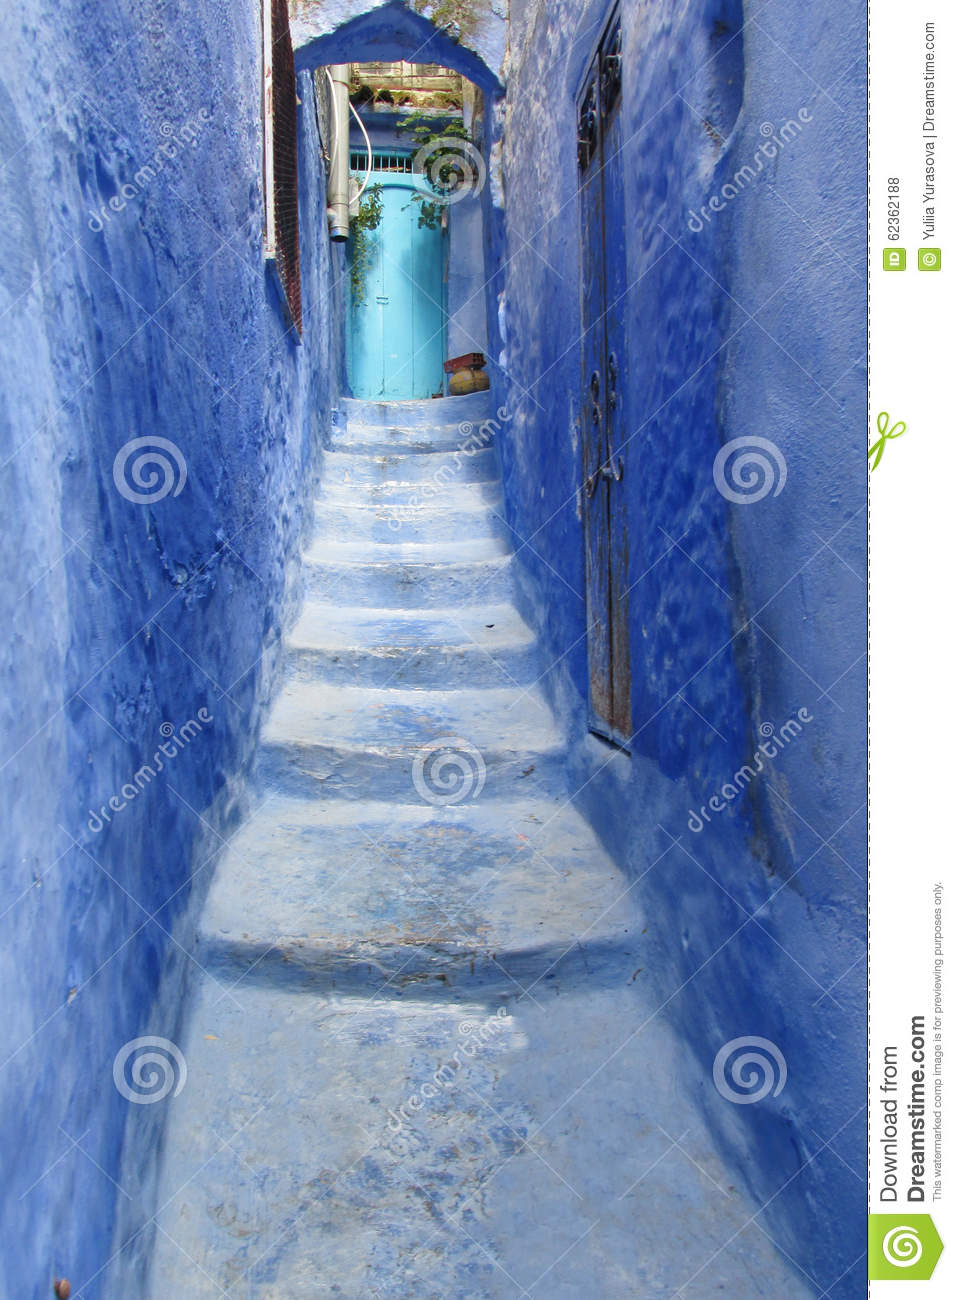 Blue City Chefchaouen Street Stock Photo Image 62362188